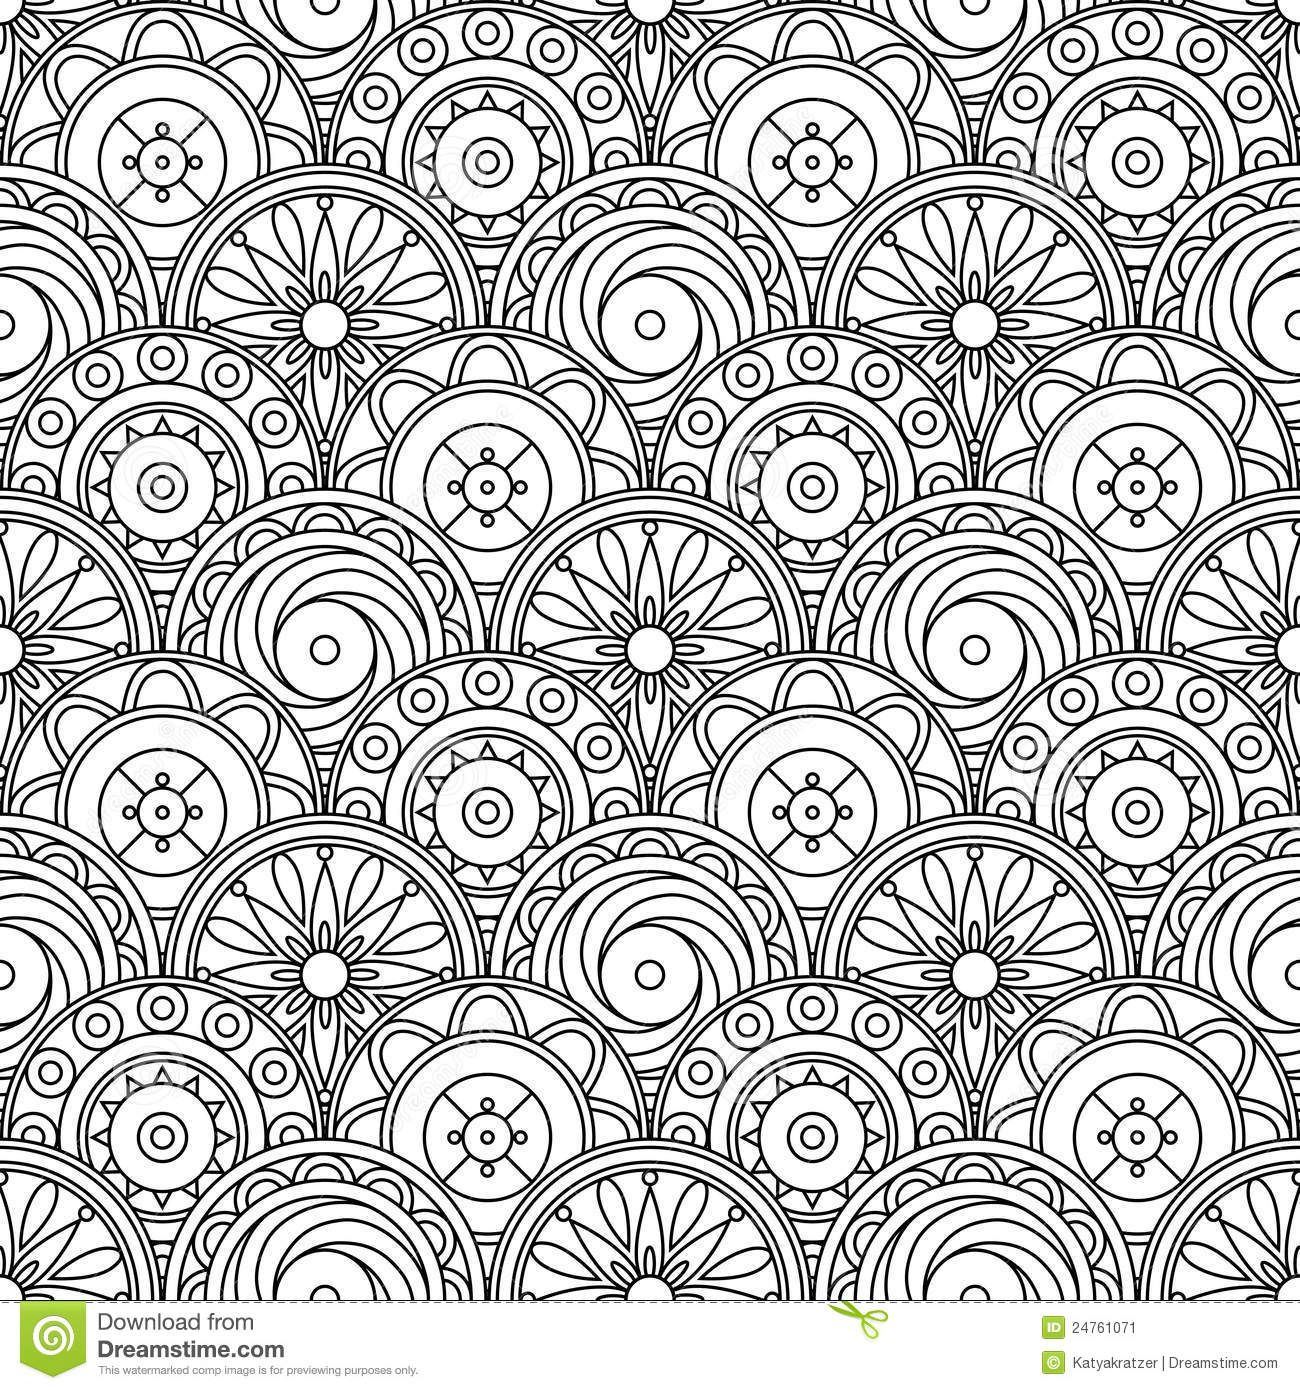 Coloring Pages Advanced Coloring Pages For Older Kids beautiful coloring page for older kids pages abstract doodle colouring adult detailed advanced printable kleuren voor volwassenen